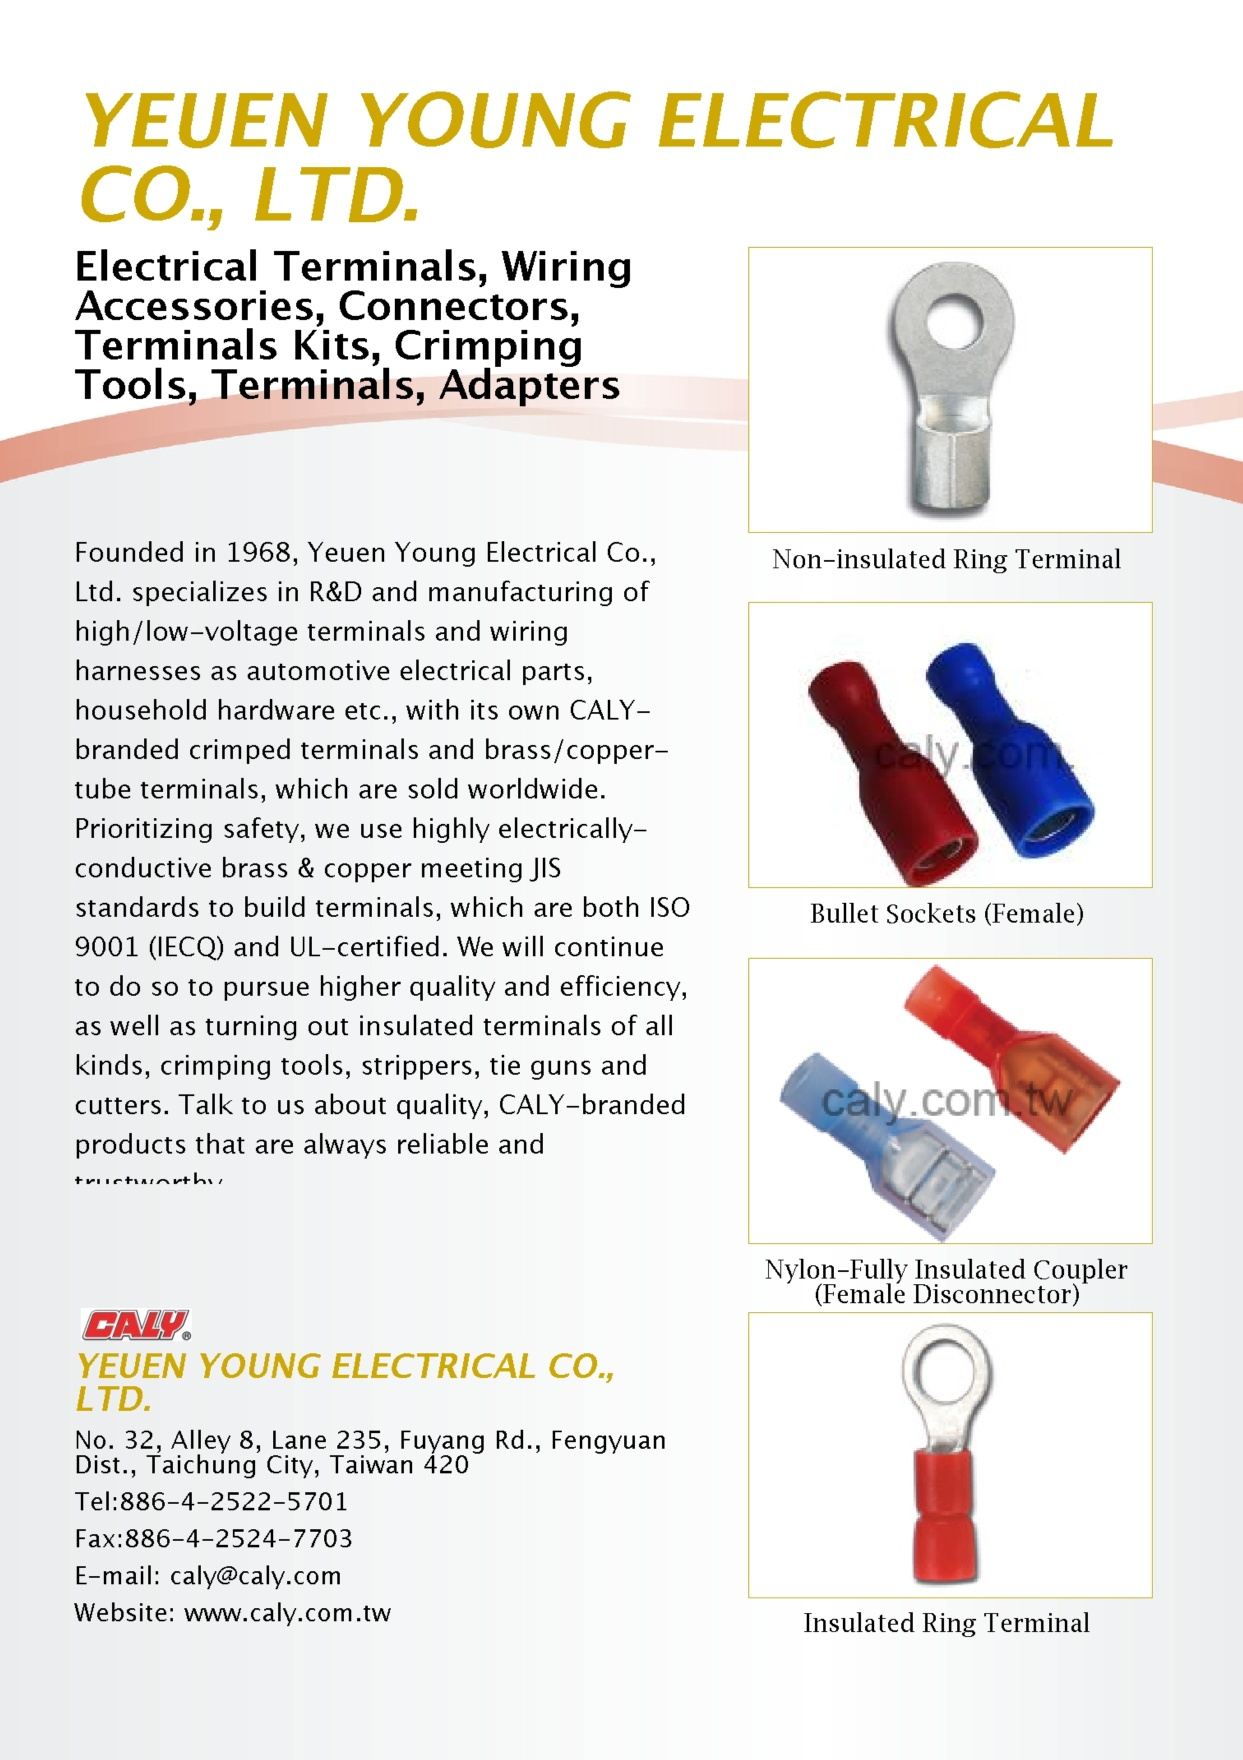 Electronics & Computers E-Magazine YEUEN YOUNG ELECTRICAL CO., LTD.